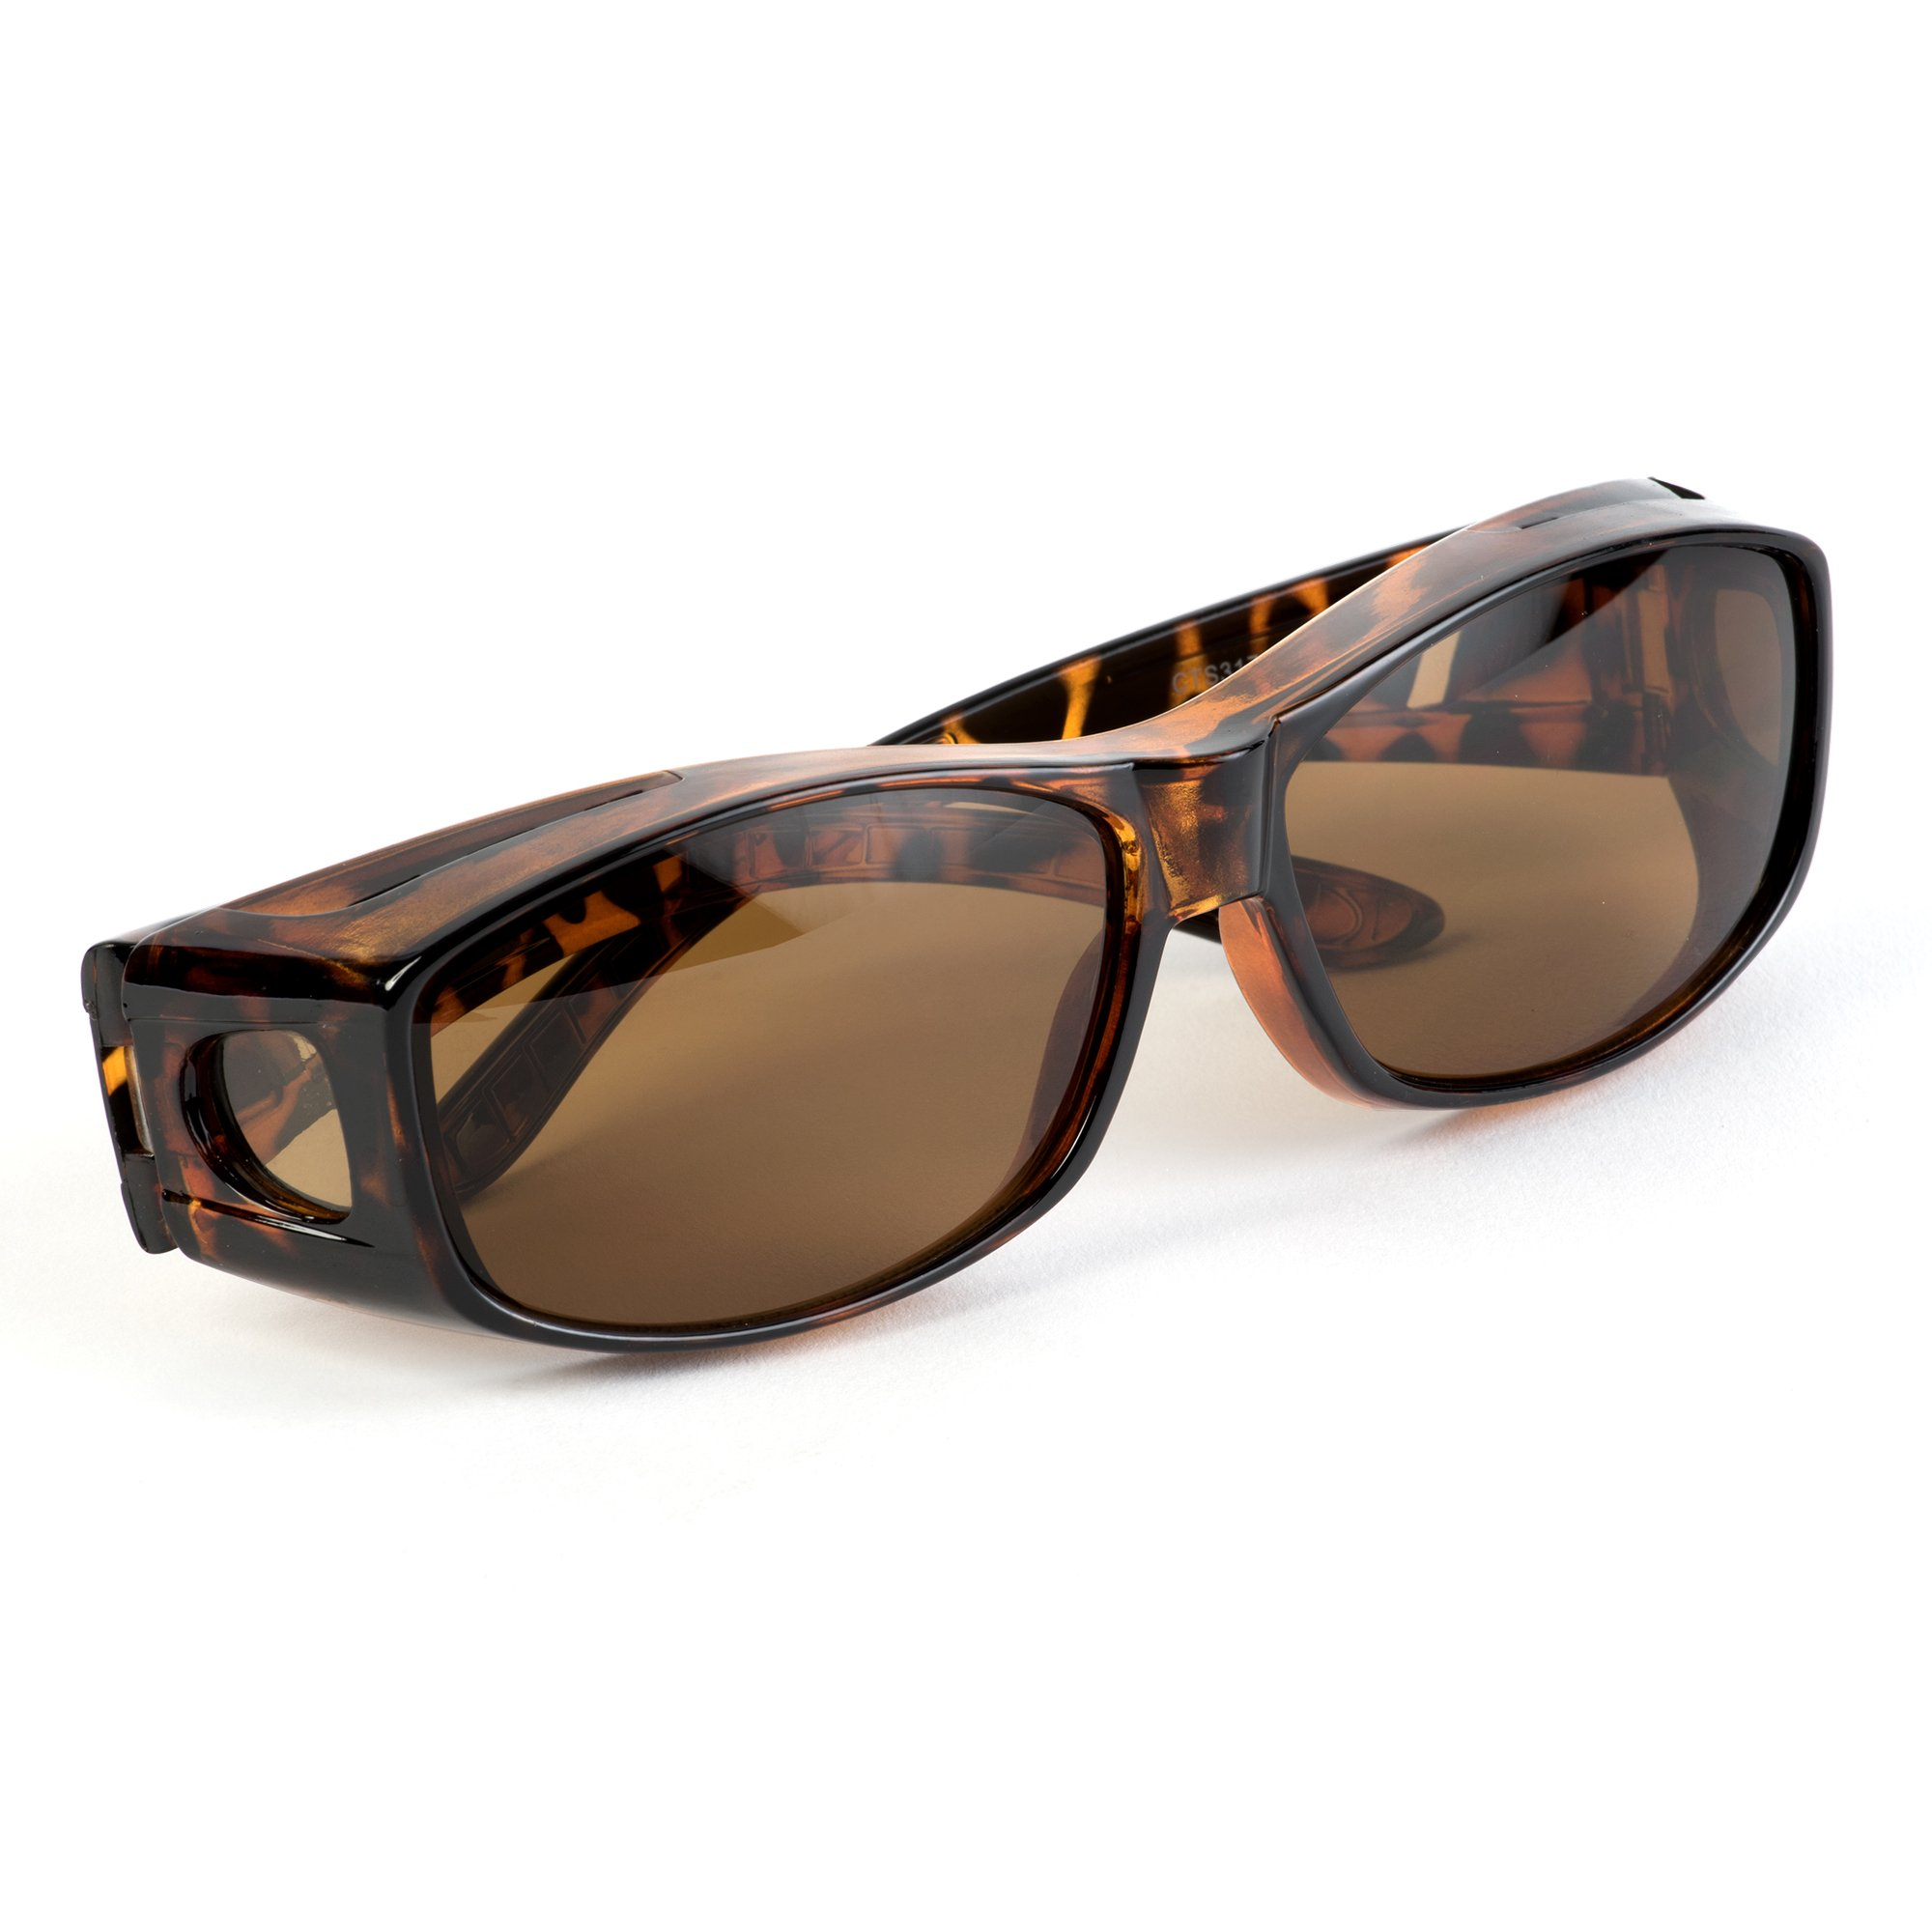 Over Glasses Sunglasses - Fitover Sunglasses with 100% UV Protection - By Pointed Designs (Leopard) by Pointed Designs (Image #3)